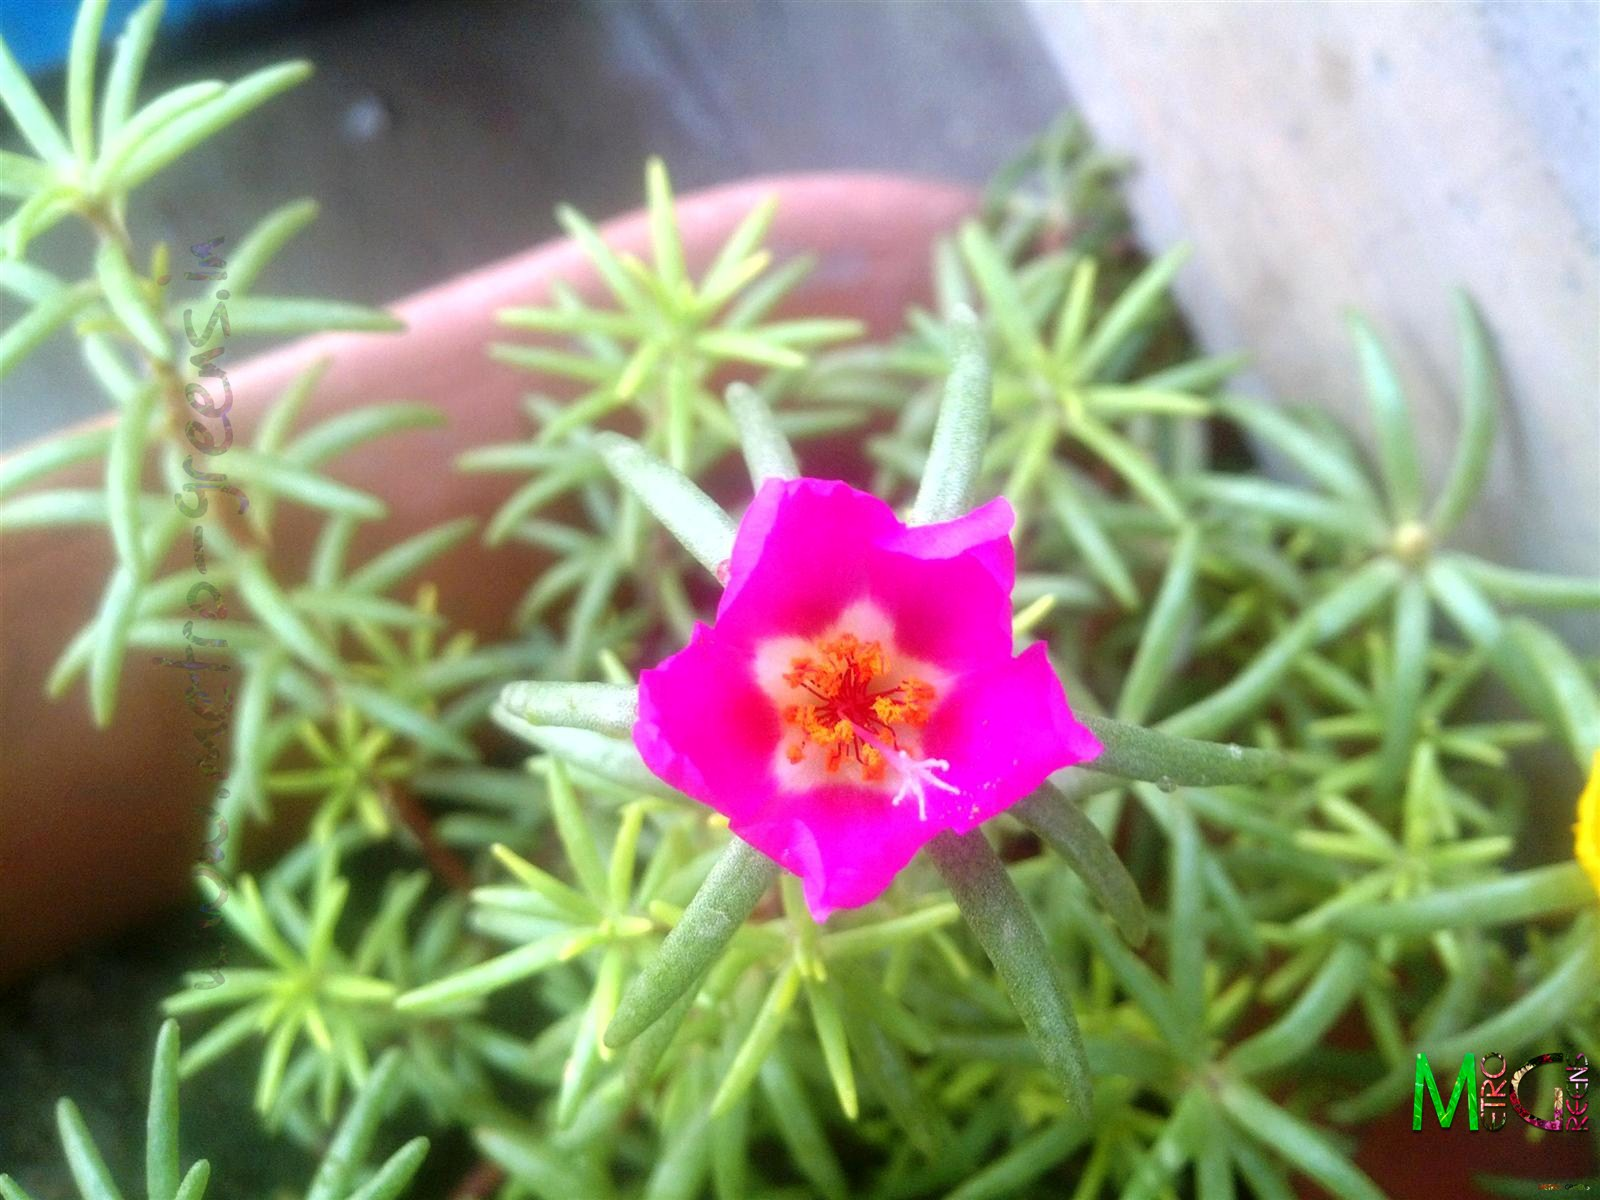 Metro Greens: A pink portulaca bloom.